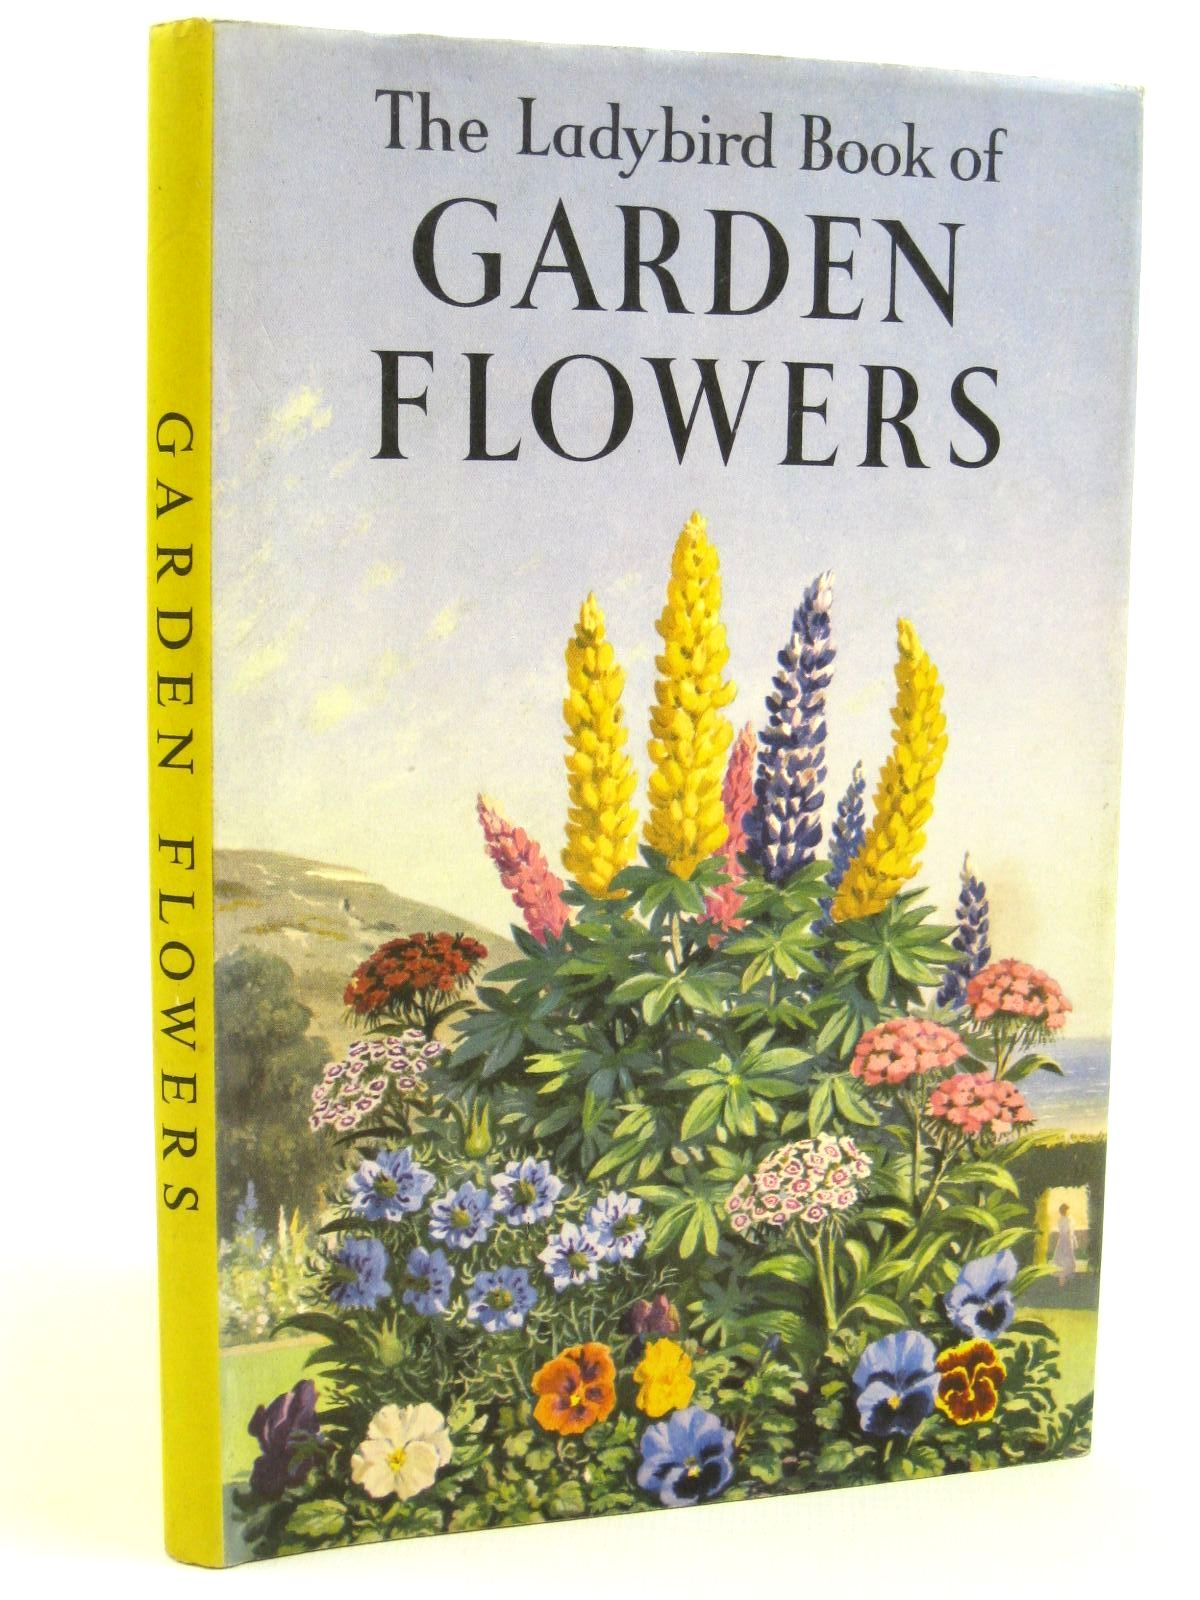 Photo of THE LADYBIRD BOOK OF GARDEN FLOWERS written by Vesey-Fitzgerald, Brian illustrated by Leigh-Pemberton, John published by Wills & Hepworth Ltd. (STOCK CODE: 1316793)  for sale by Stella & Rose's Books